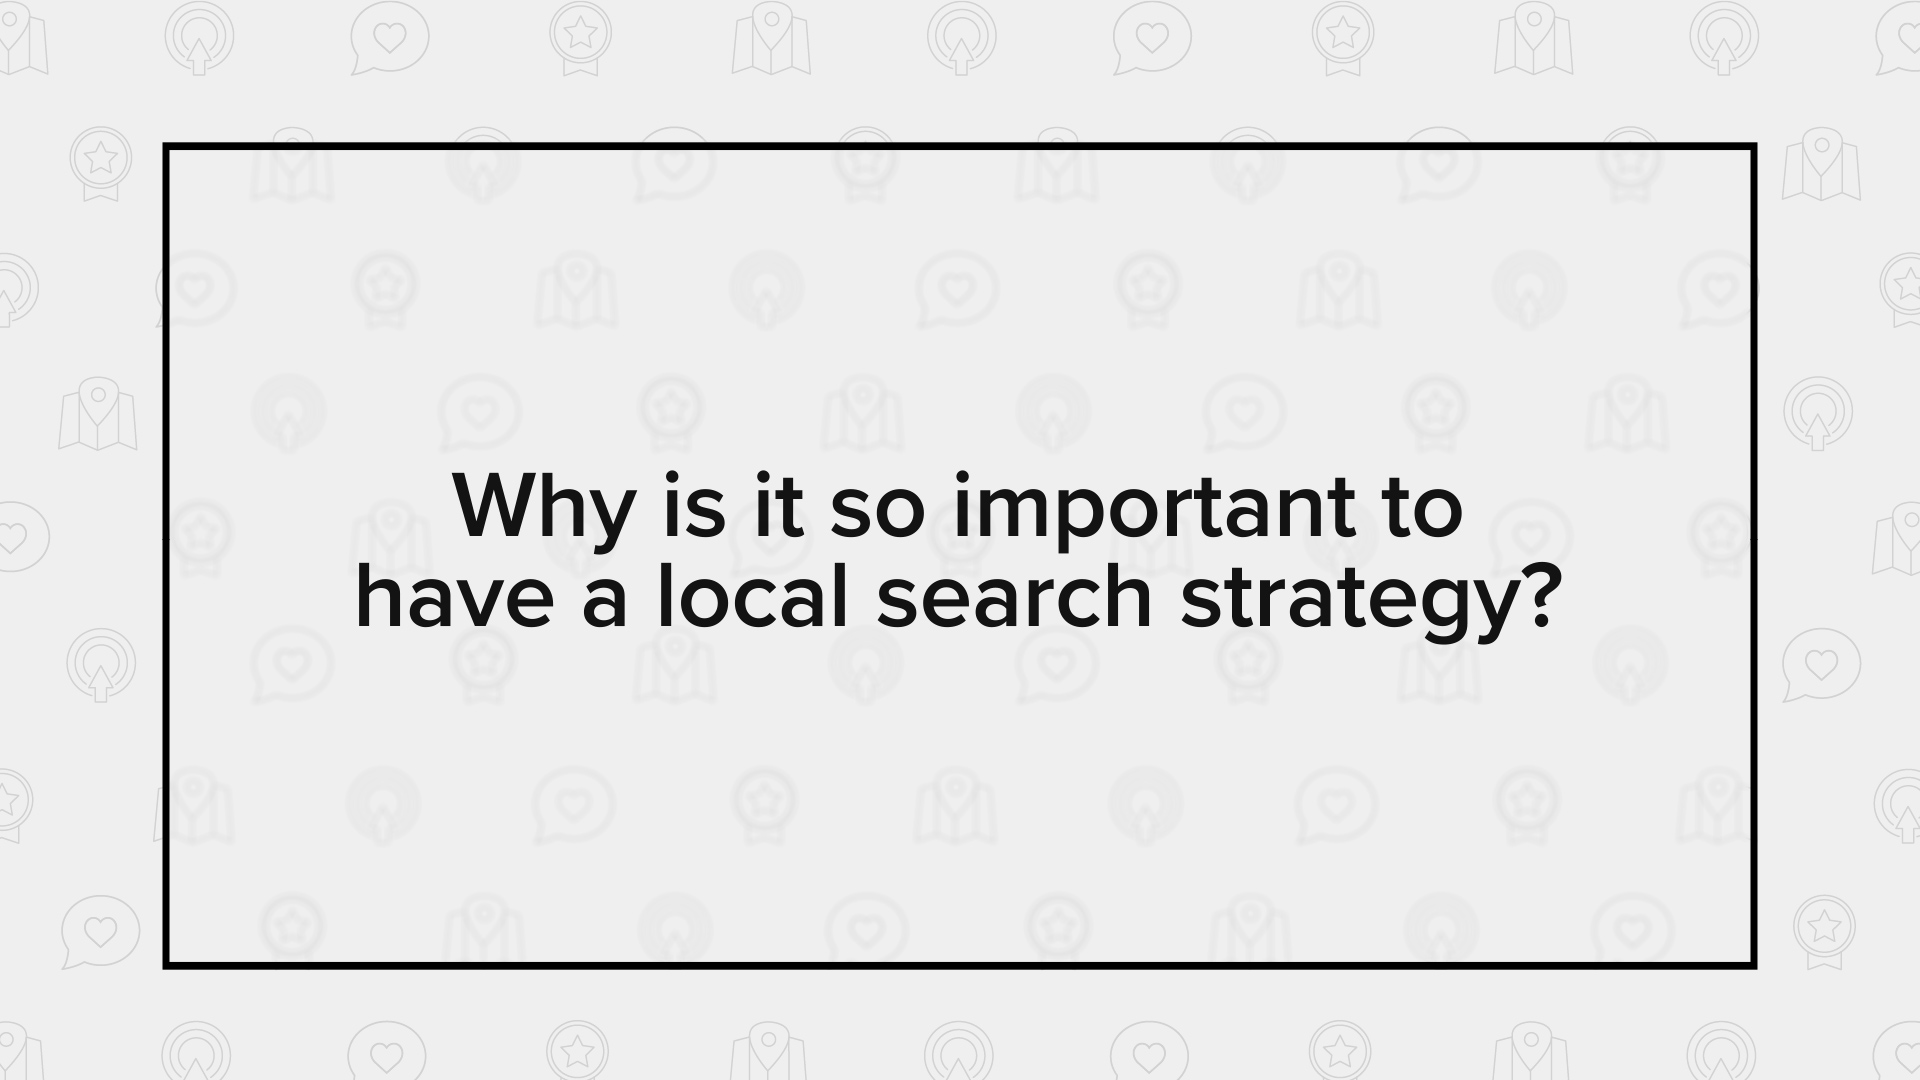 Why Do I Need a Local Search Strategy? | Ask Us Anything